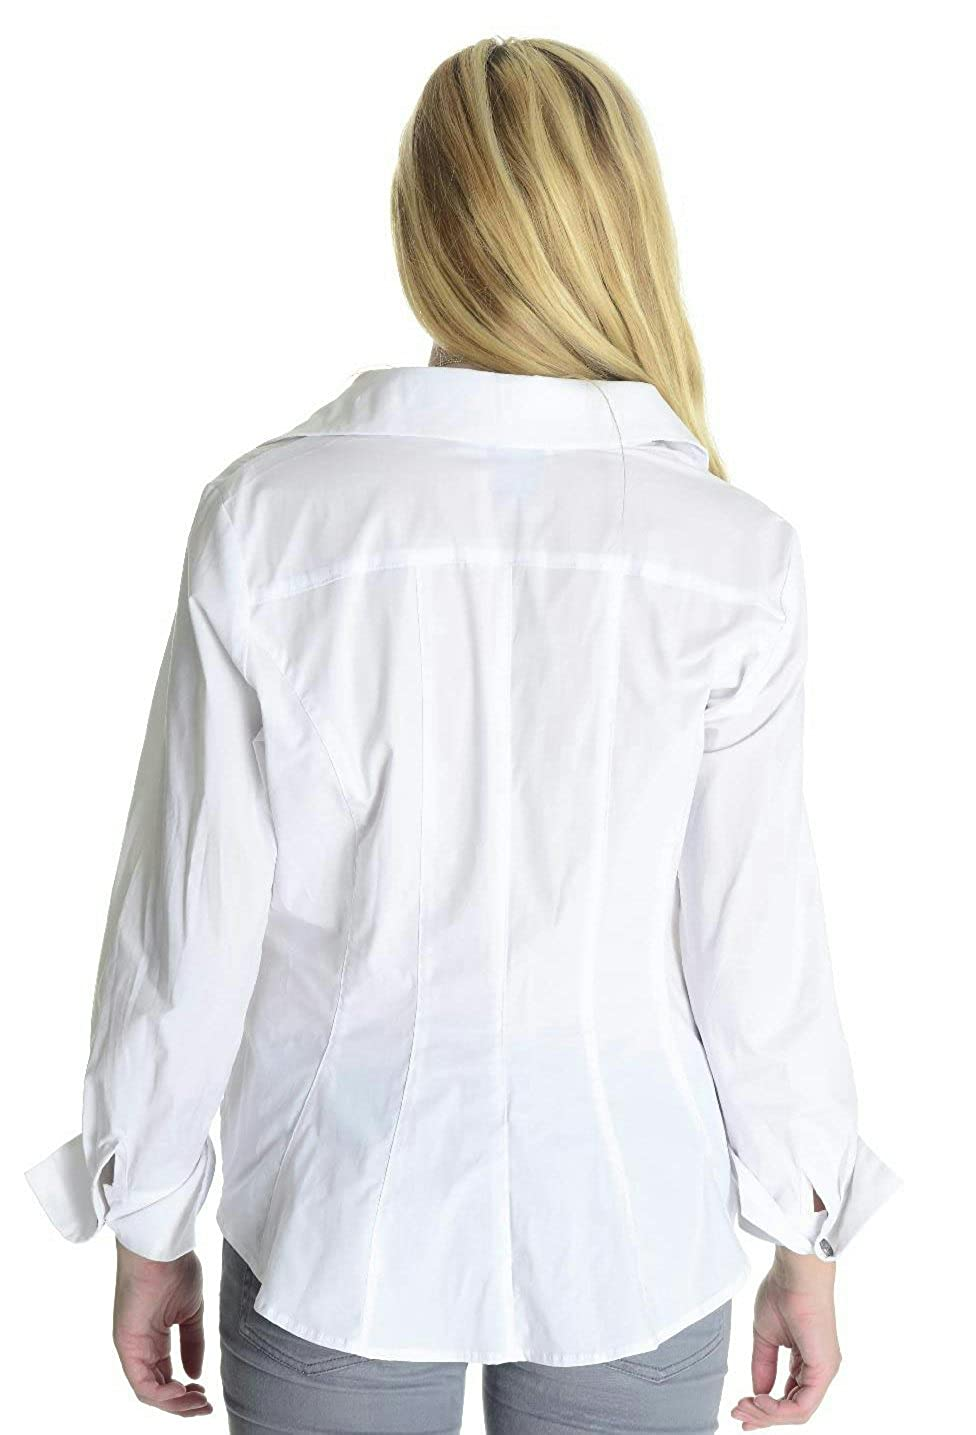 2fc4d560036d55 Bella Pelle Women's Crisp Stretch Cotton Button Down Collared Blouse,  White, Large at Amazon Women's Clothing store: